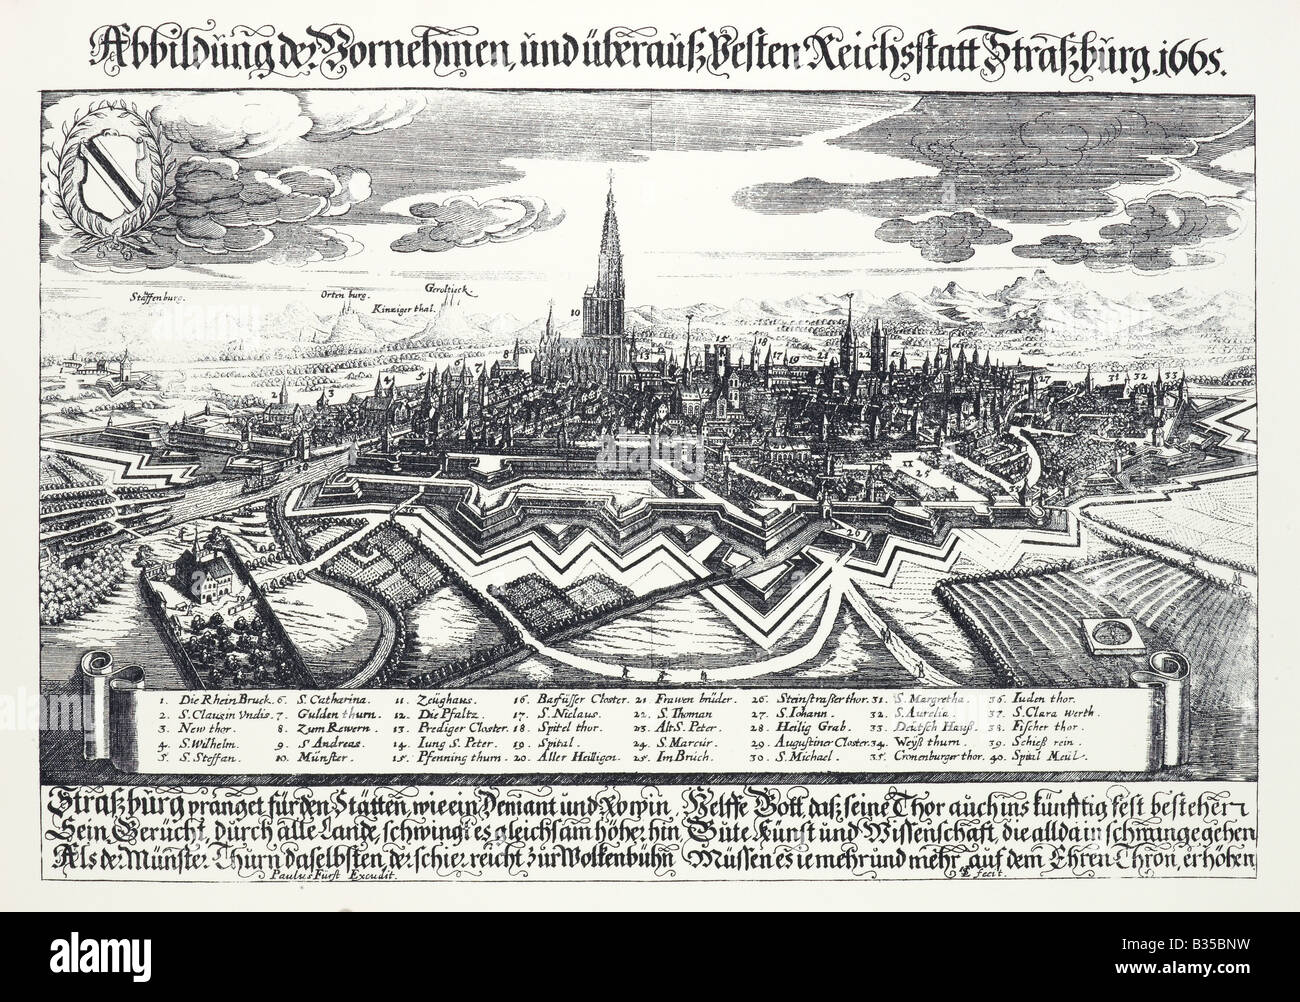 VINTAGE WOODCUT PRINT 17th Century SHOWING THE FORTIFIED TOWN OF STRASBOURG ALSACE FRANCE EUROPE Stock Photo